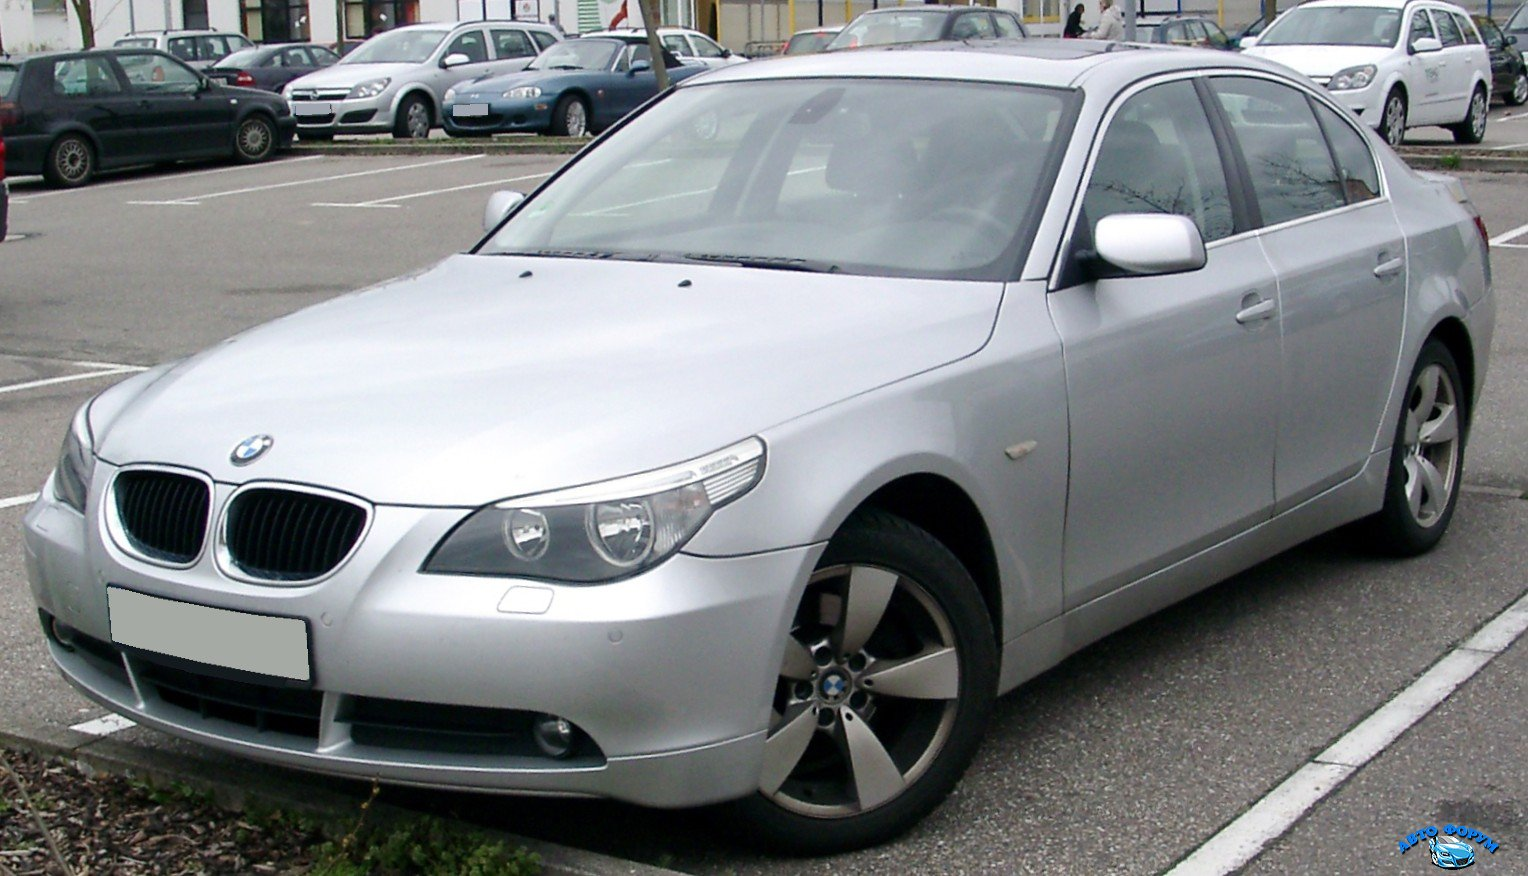 BMW_E60_front_20080417.jpg